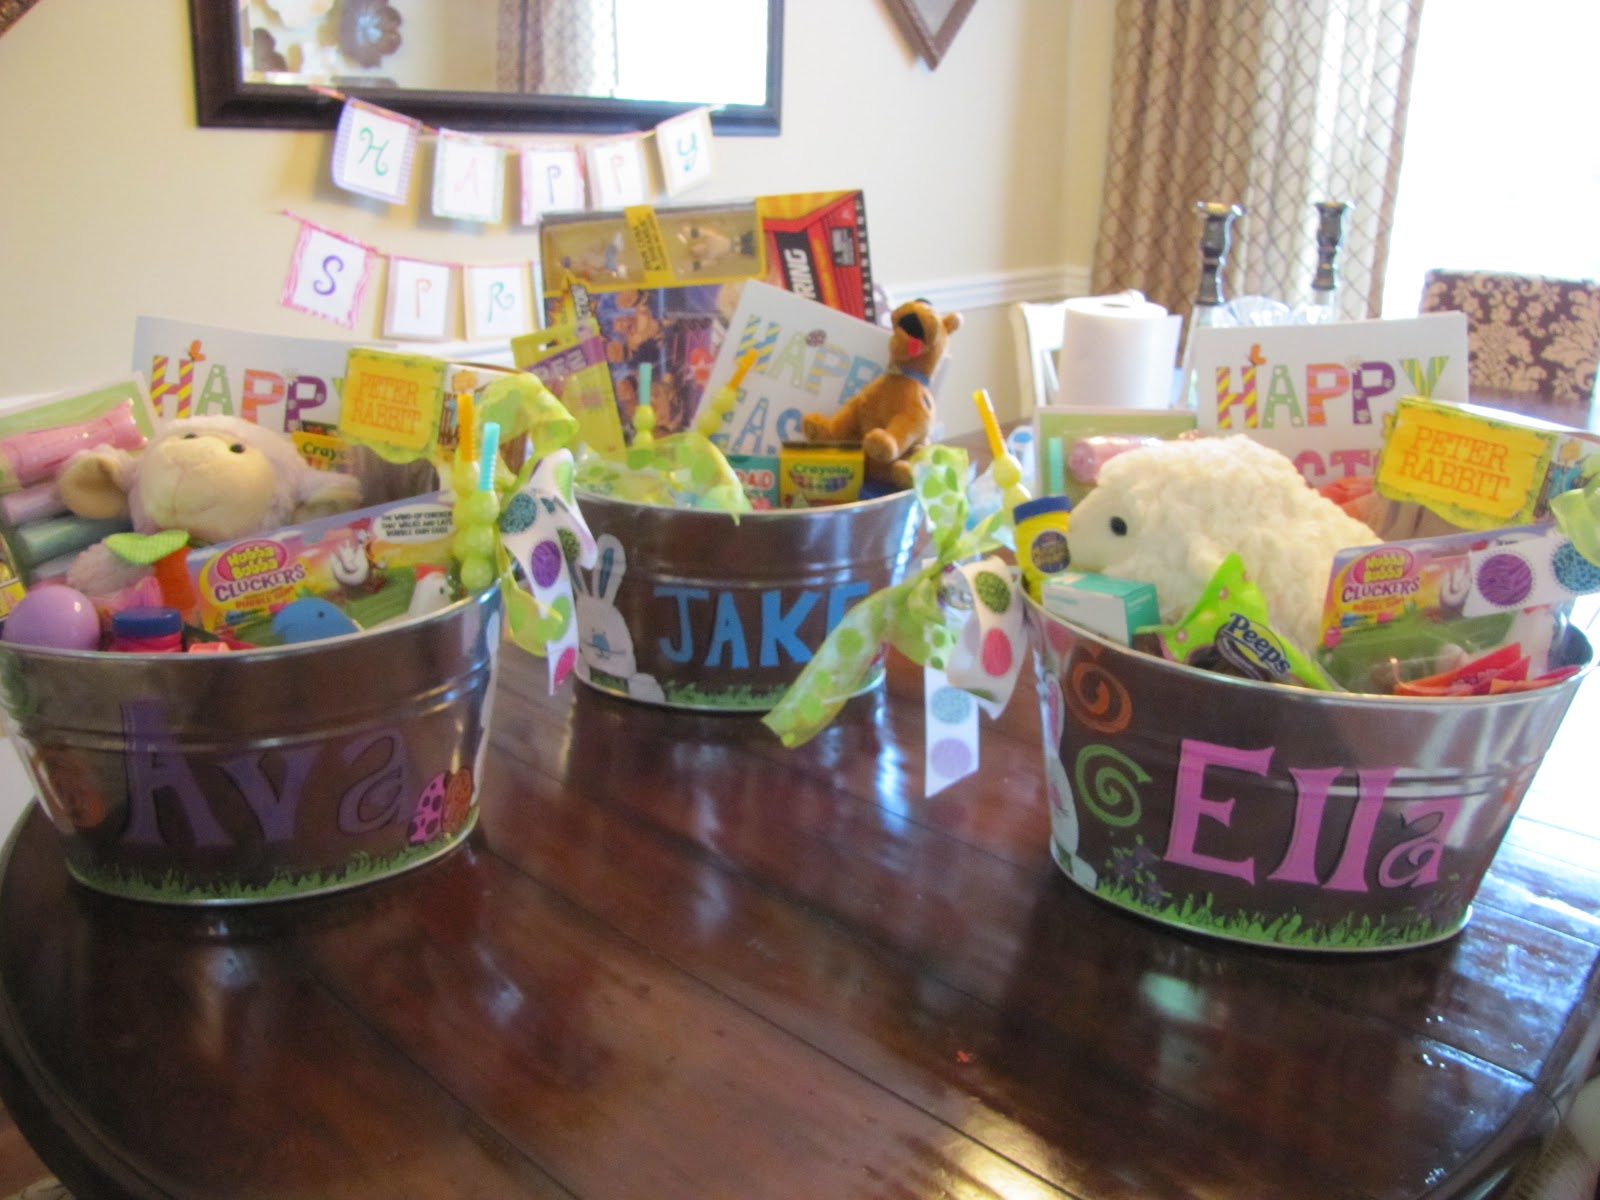 Real Life Estate Dana Sunday News Easter Basket DIY Tutorial